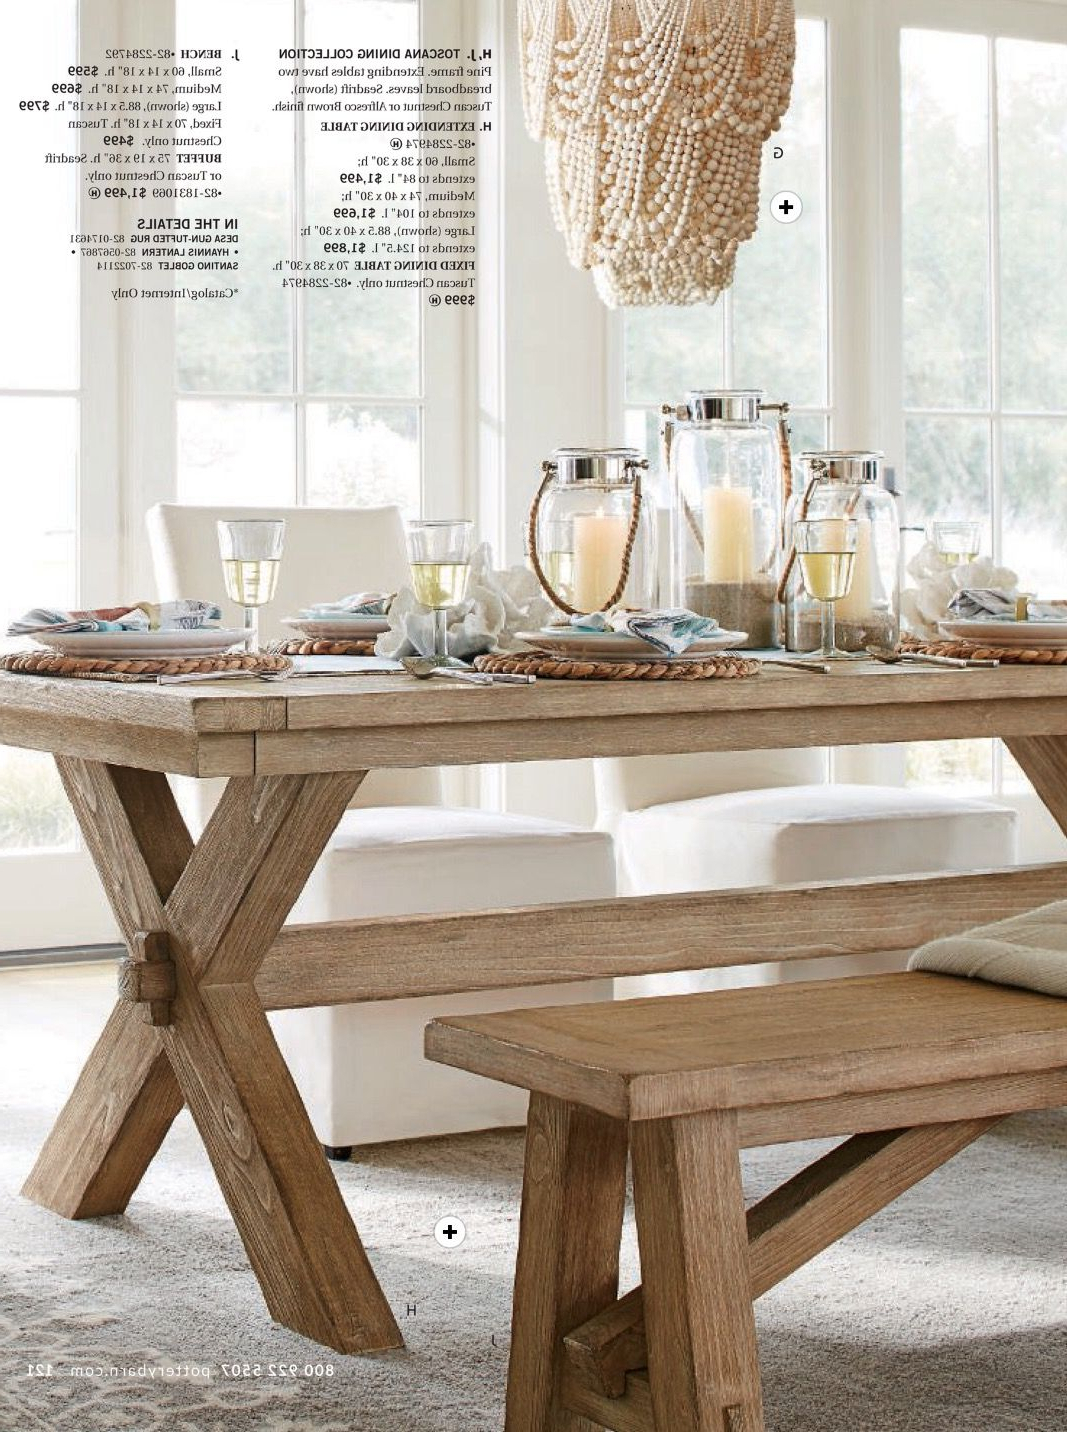 Seadrift Benchwright Dining Tables Regarding Well Known Toscano Dining Table And Bench In Seadrift, Amelia Wood Bead (View 21 of 25)